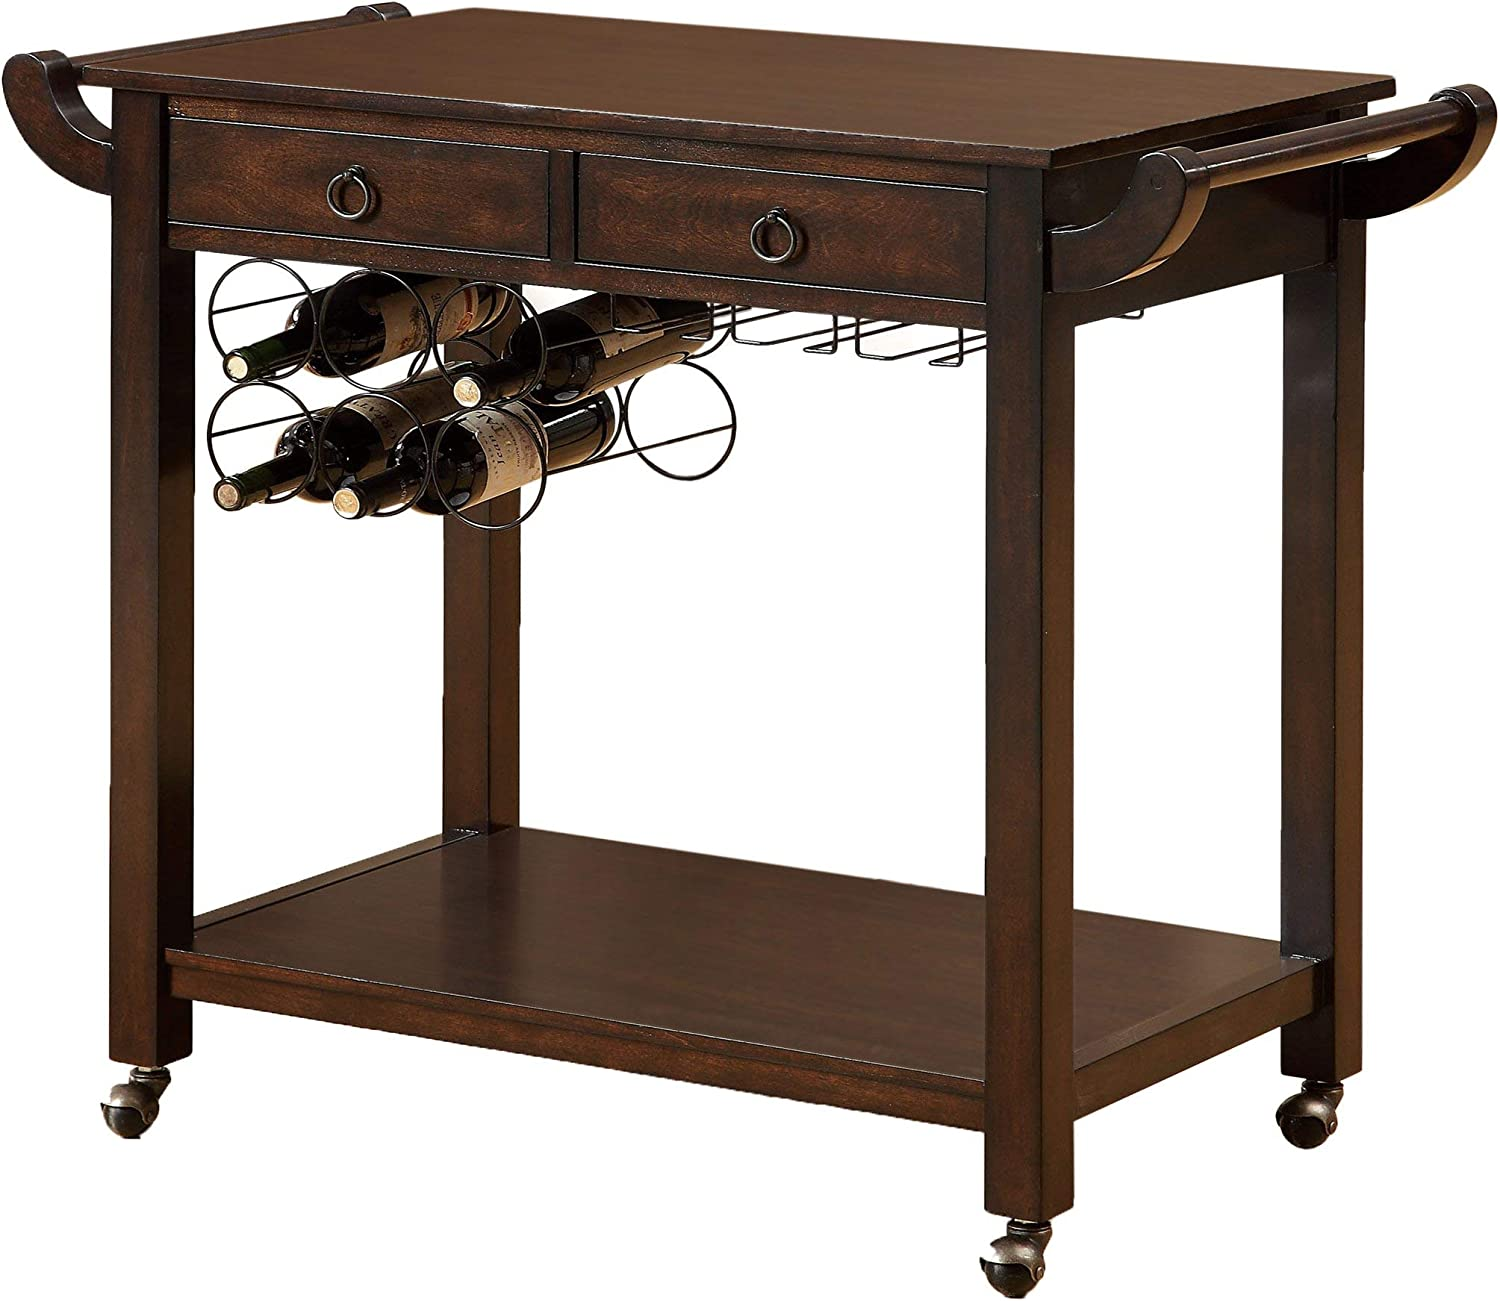 Furniture of America Bettise Mobile 2-Drawer Kitchen Cart with Wine and Glass Storage, Dark Walnut